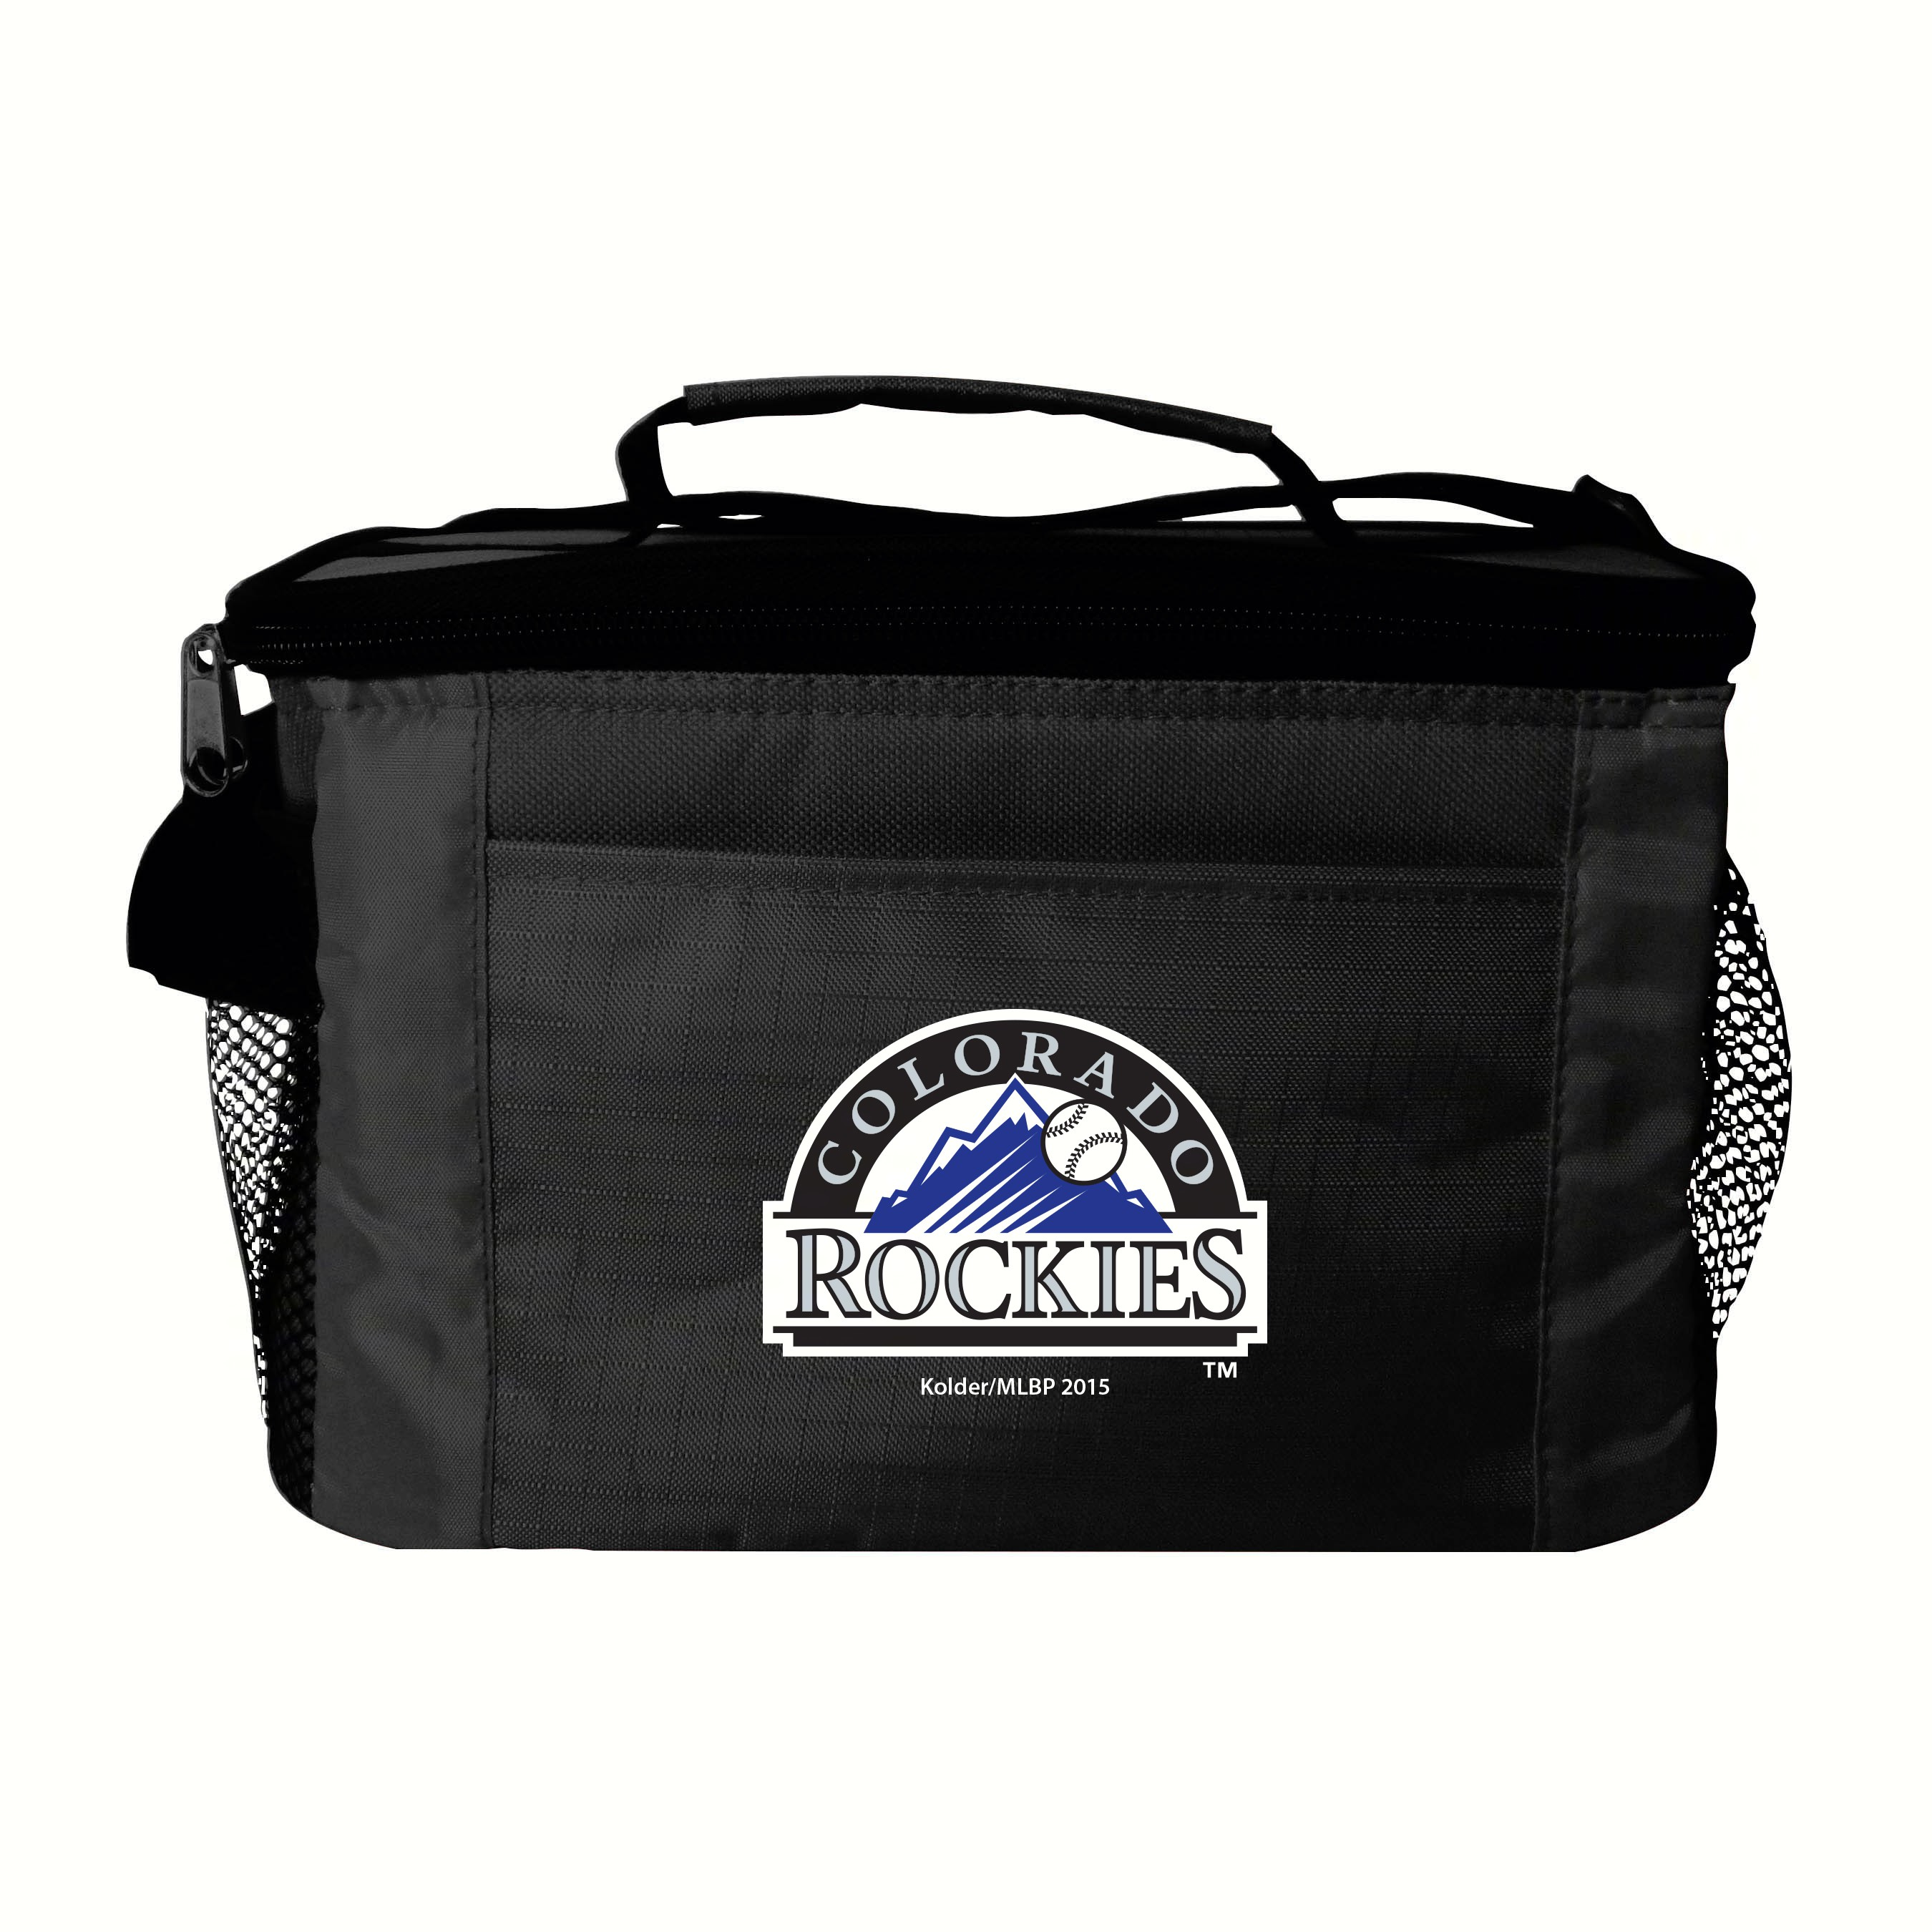 6 pack Kooler Bag - Colorado Rockies